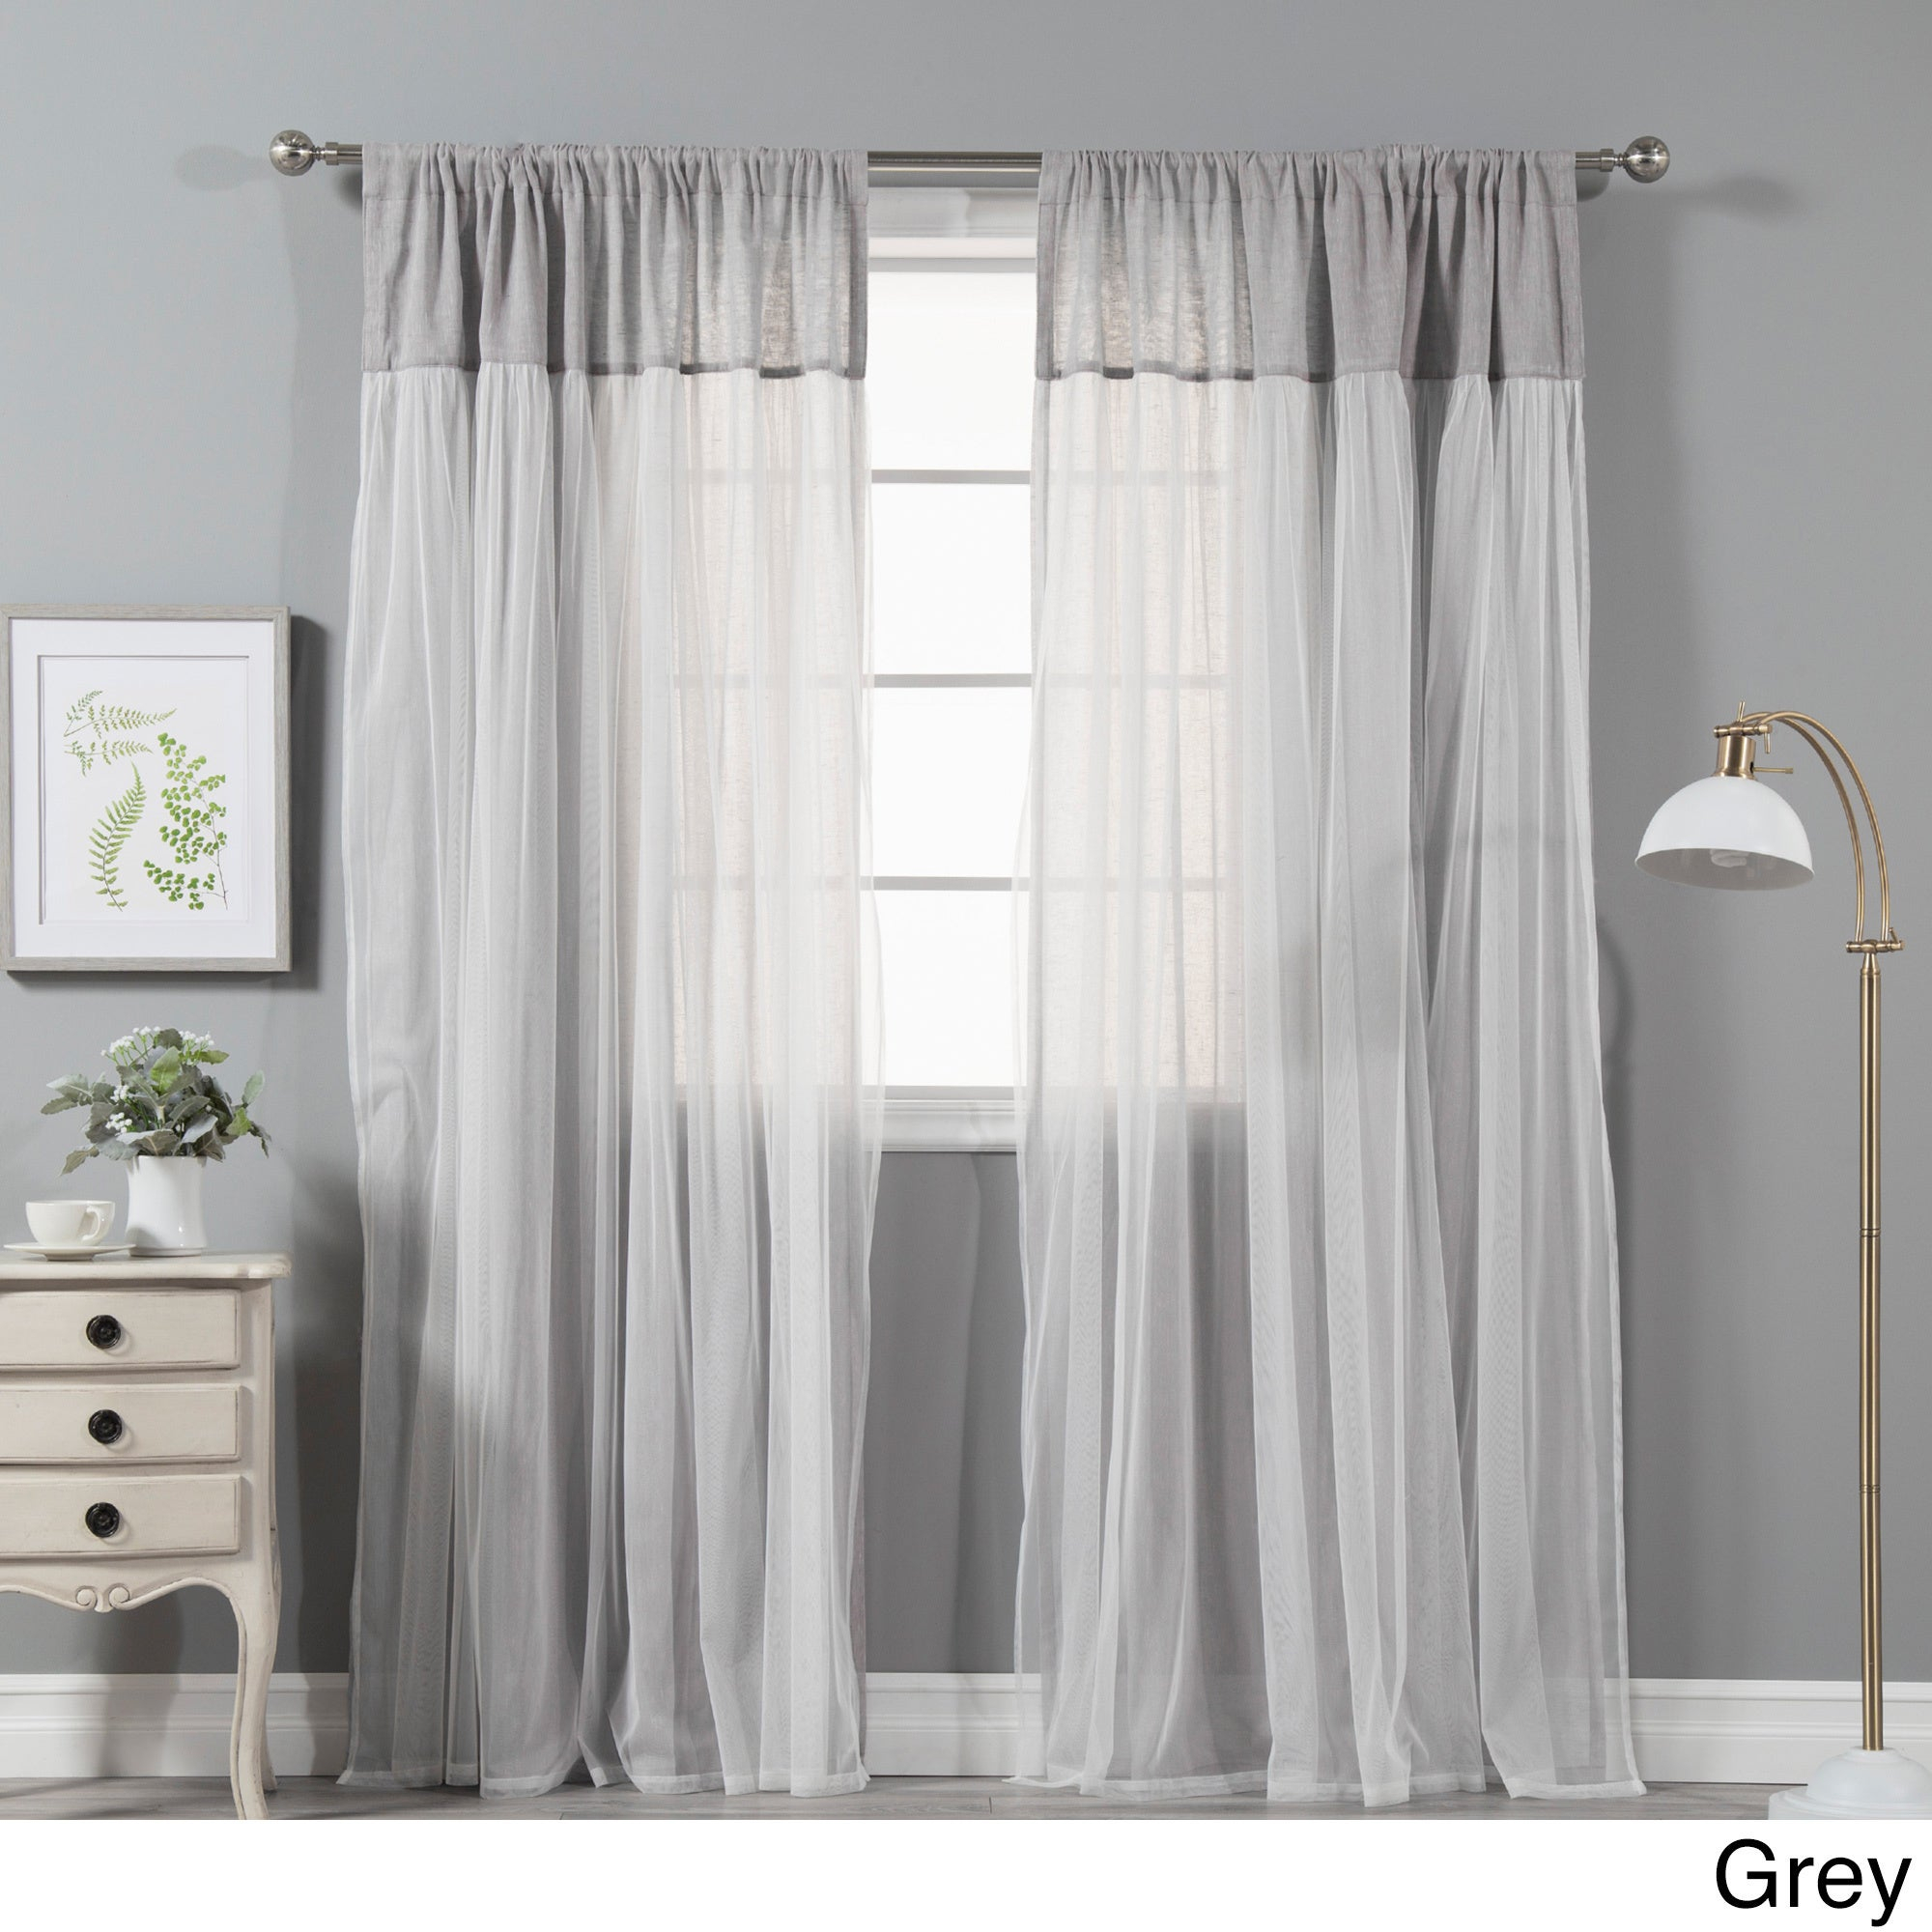 Aurora Home Tulle Overlay Pippin Faux Linen 84 Inch Curtain Panel Pair – 52 X 84 With Star Punch Tulle Overlay Blackout Curtain Panel Pairs (View 15 of 30)